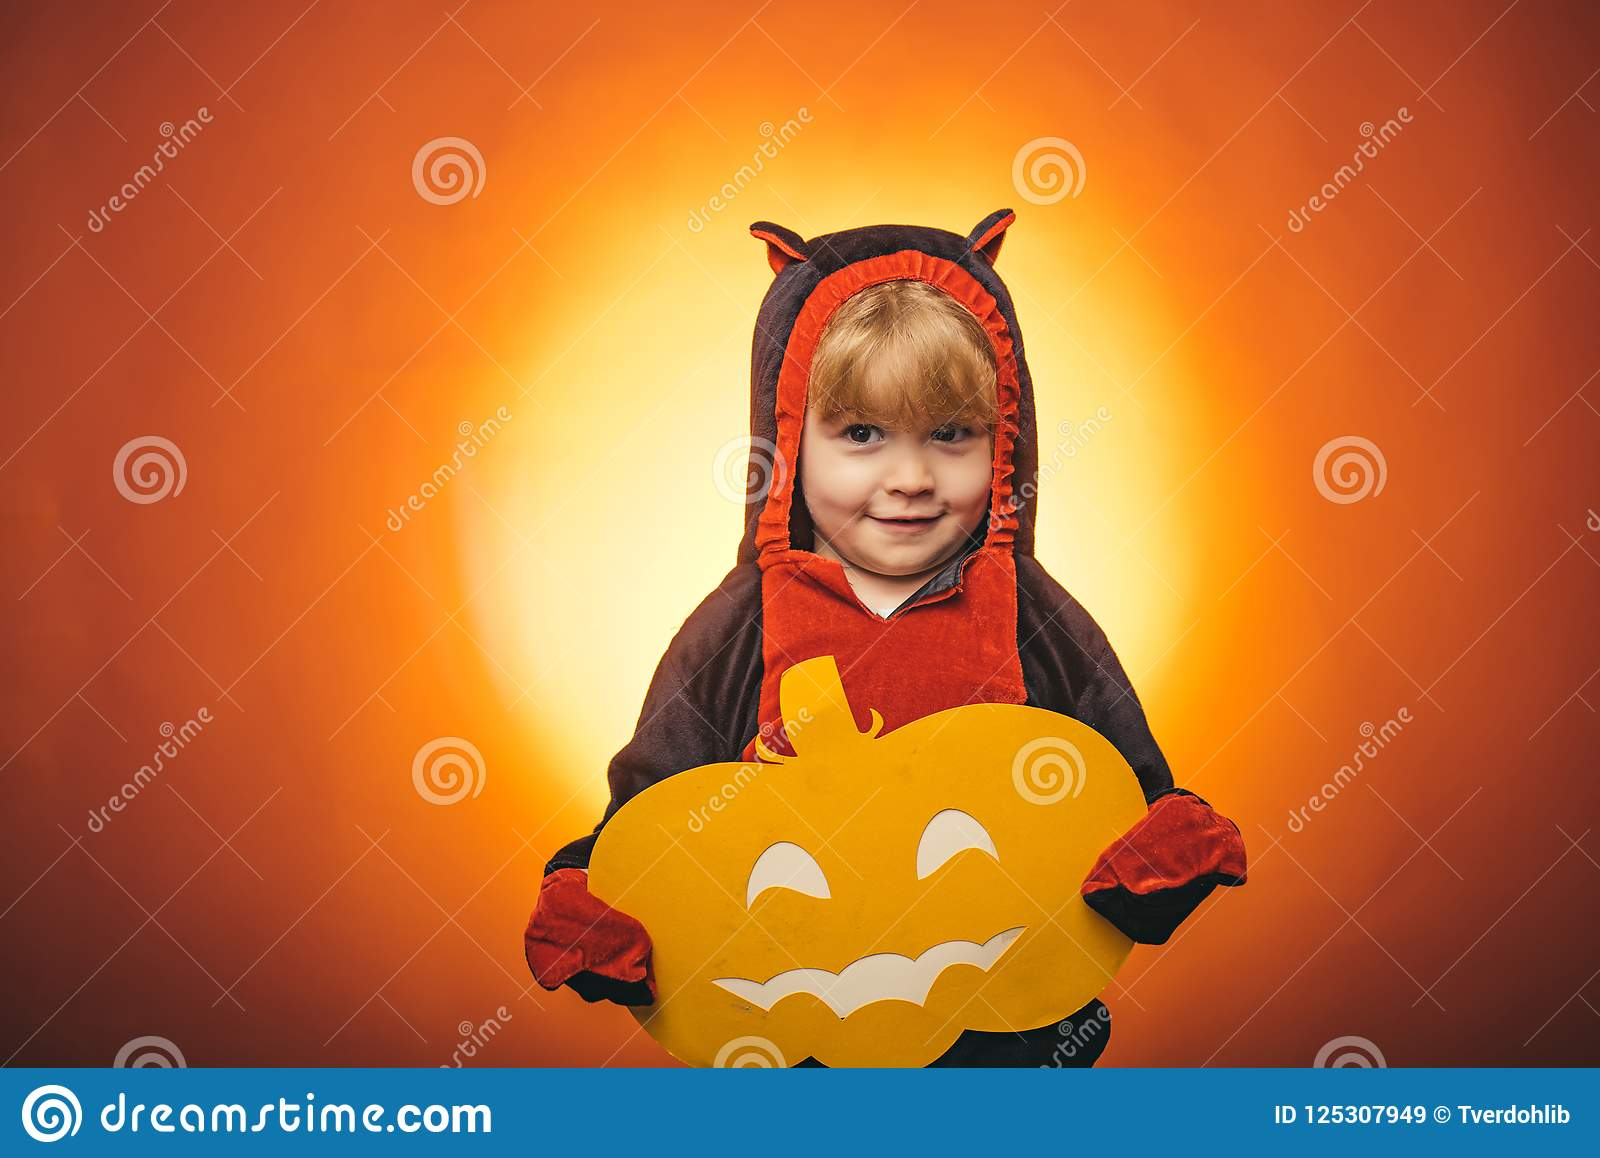 download best ideas for halloween halloween dresses and witch costumes and witch hats holidays